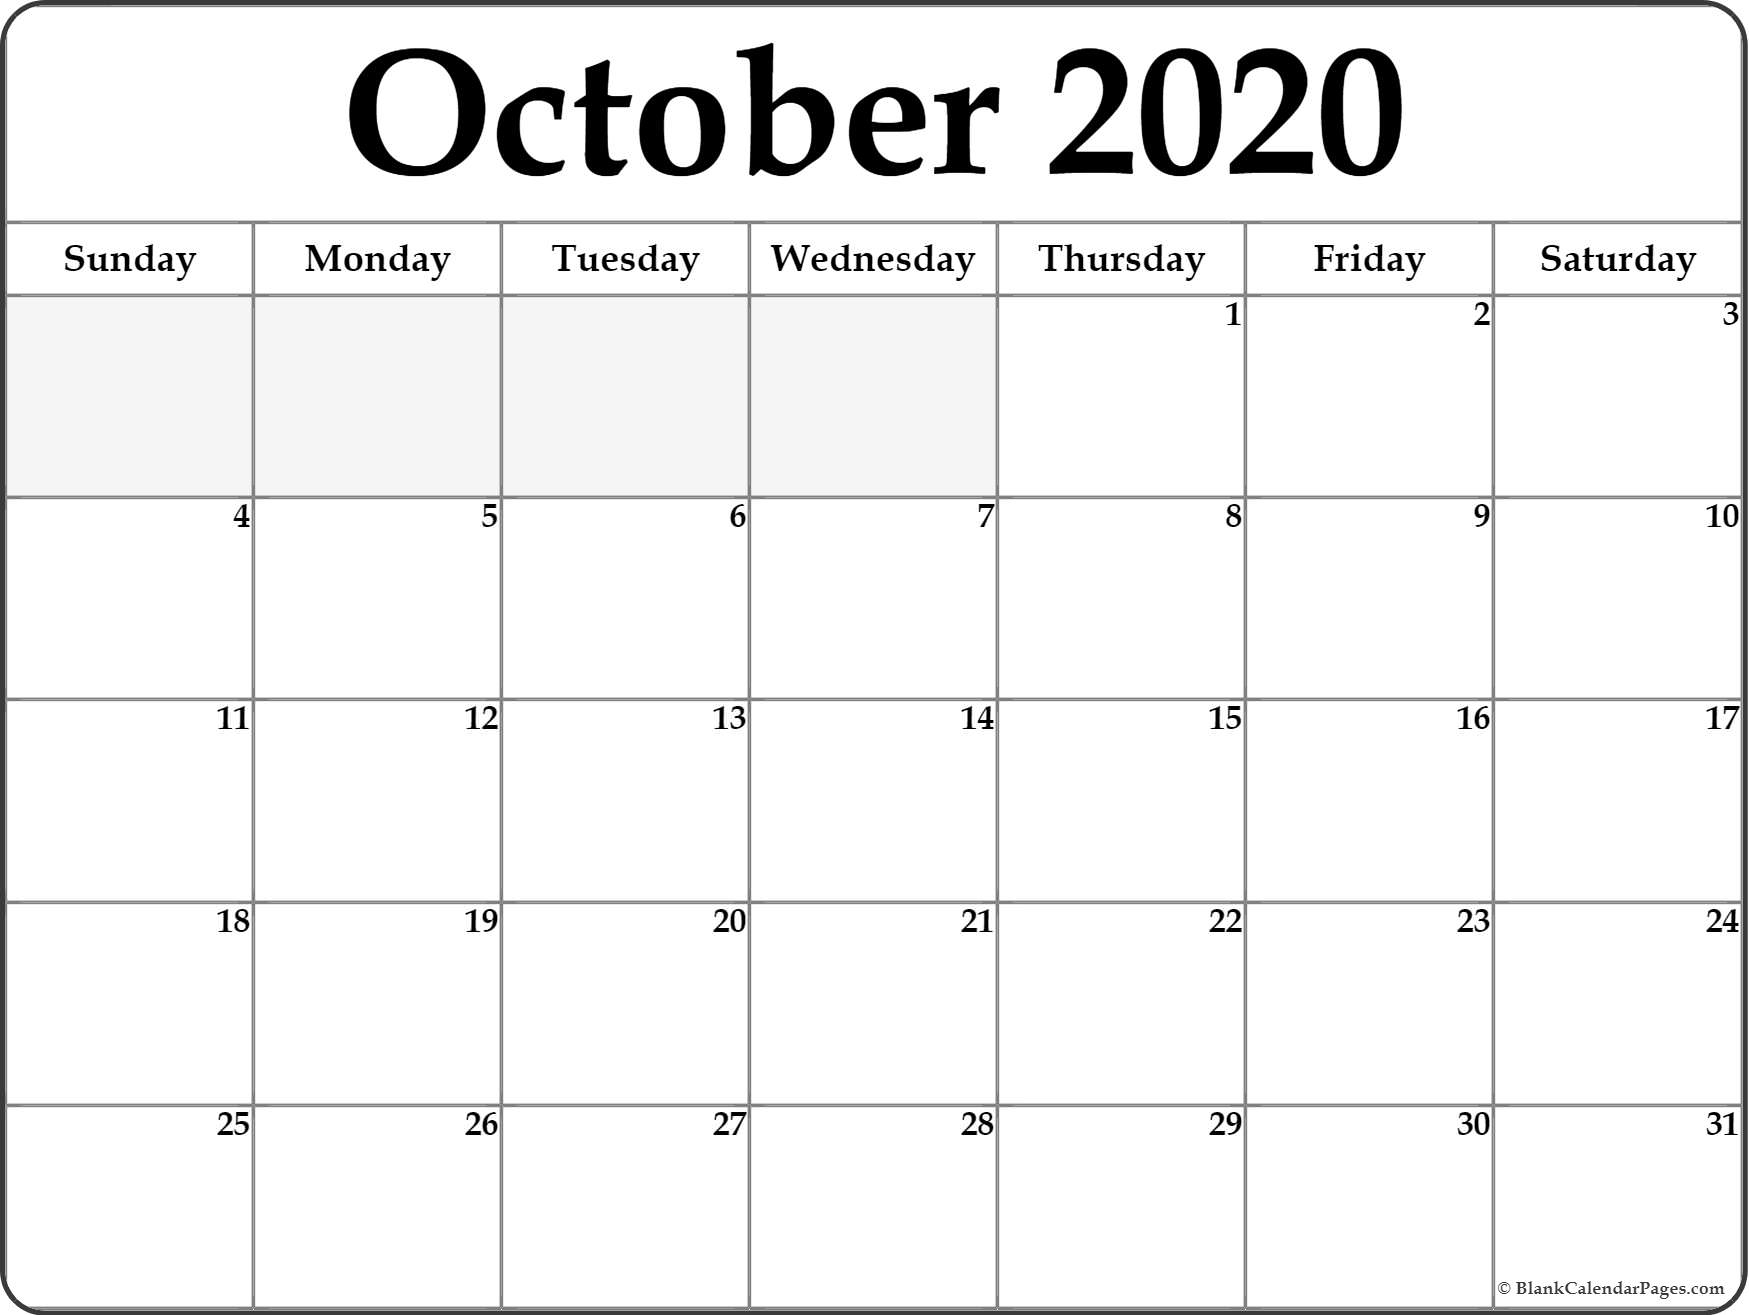 October 2020 Printable Calendar - Wpa.wpart.co